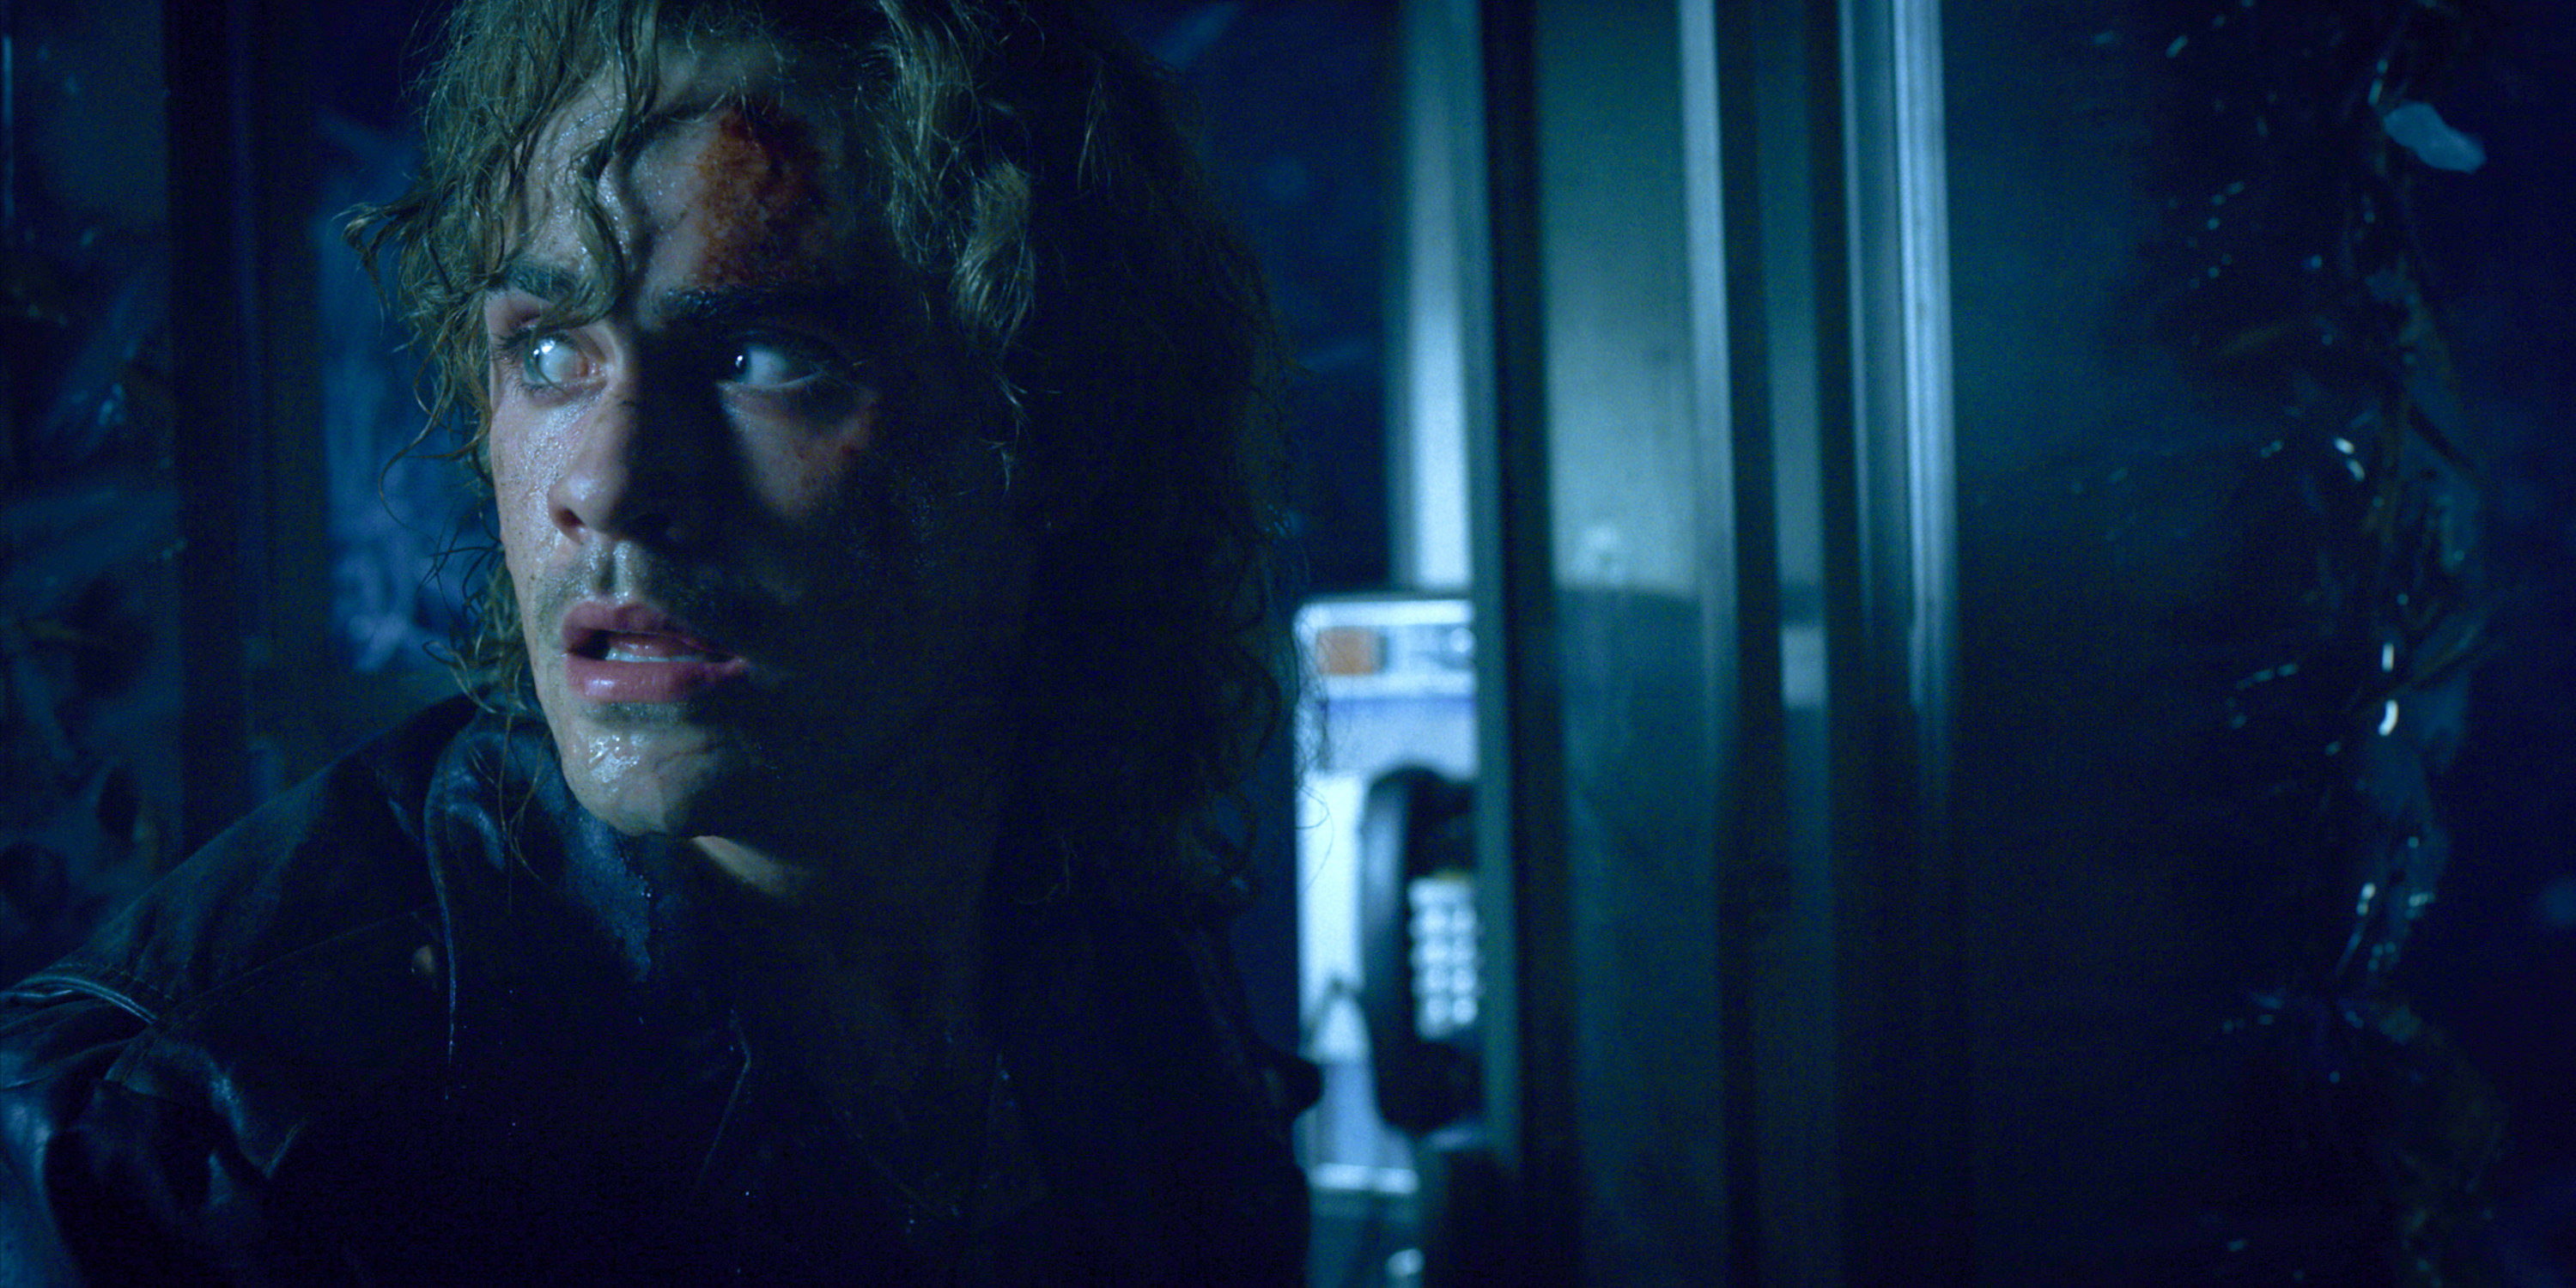 Billy in a phone booth looking panicked